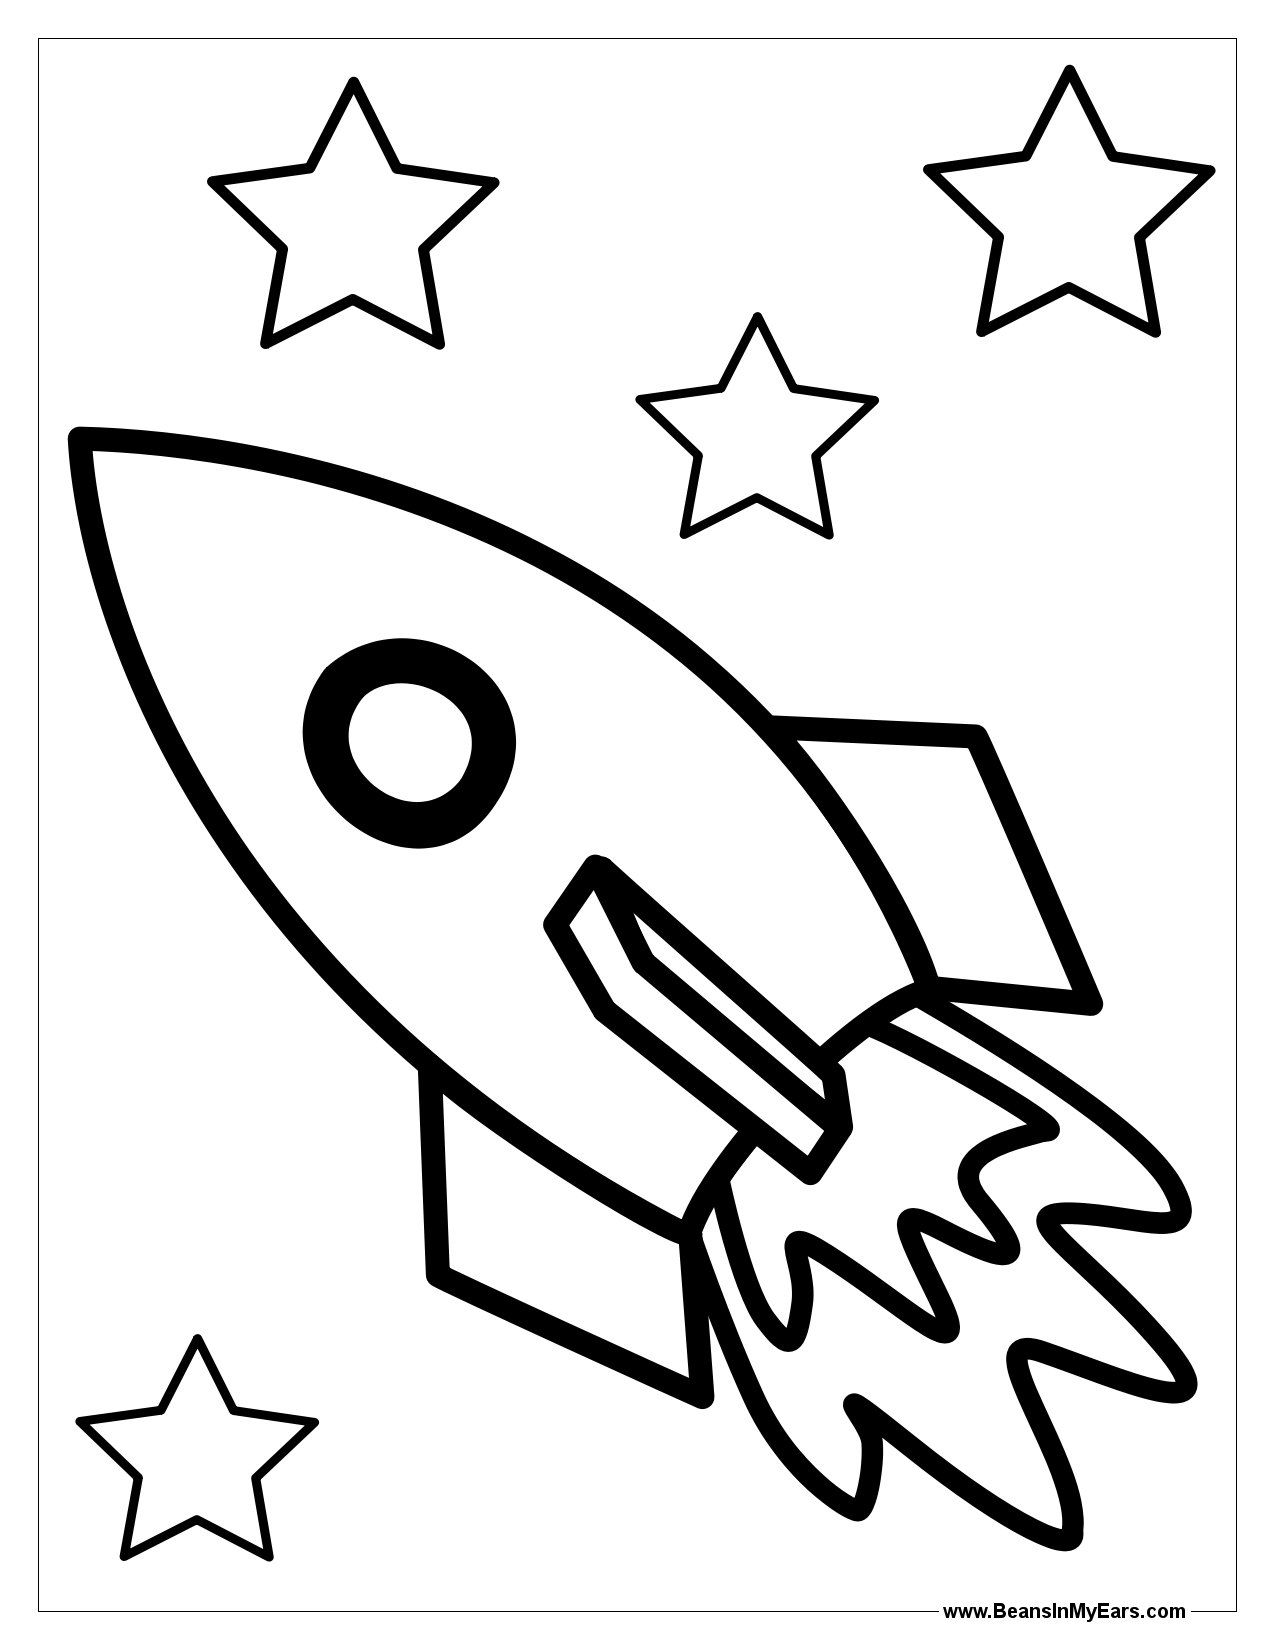 Uncategorized Rocket Coloring Sheets free rocket ship coloring pages with archives for archives